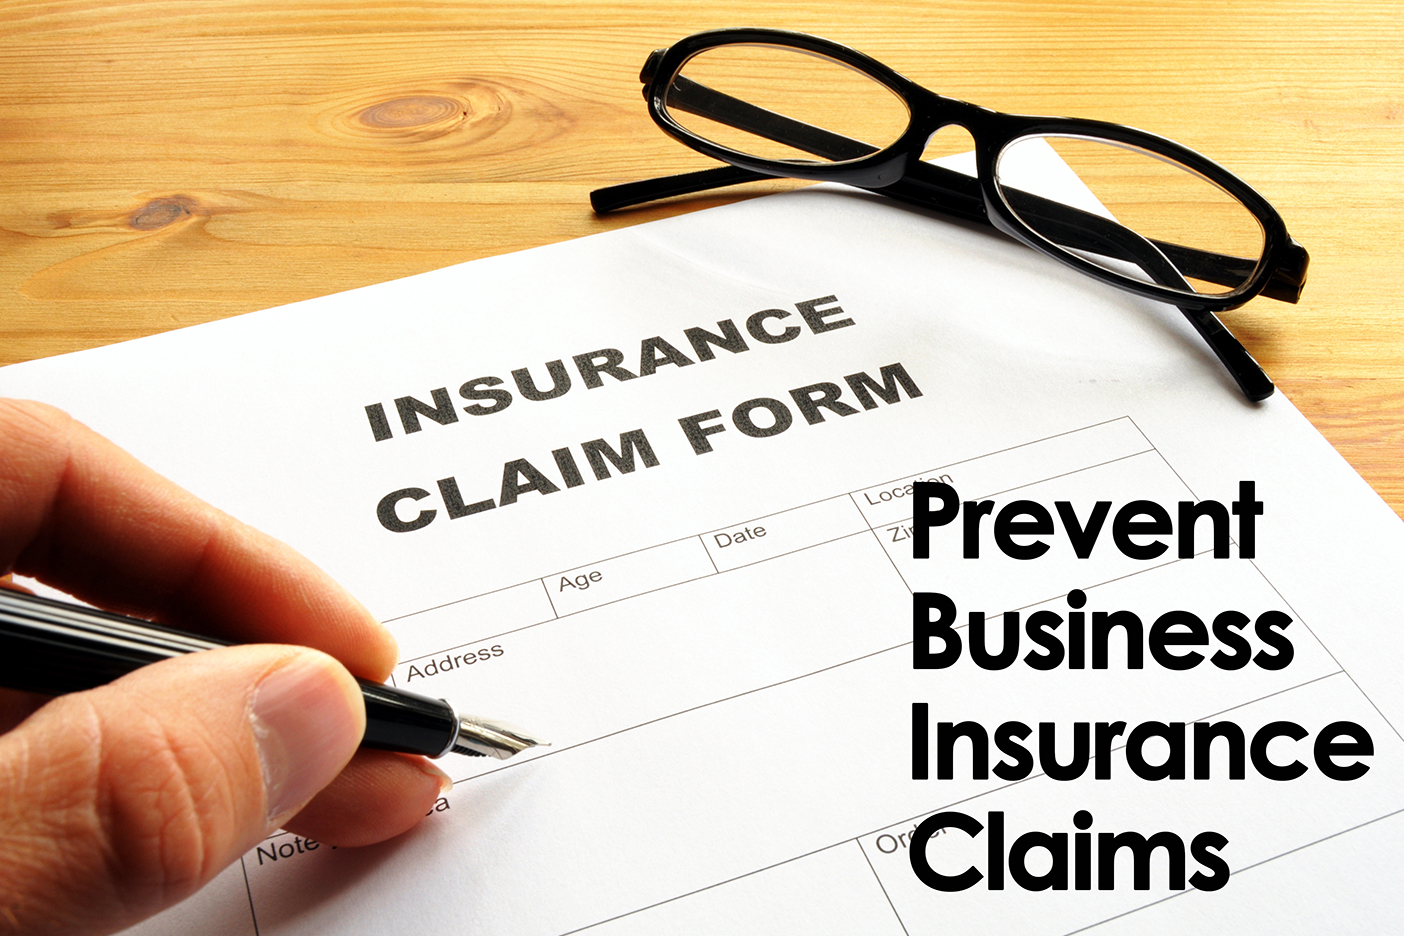 Prevent Business Insurance Claims